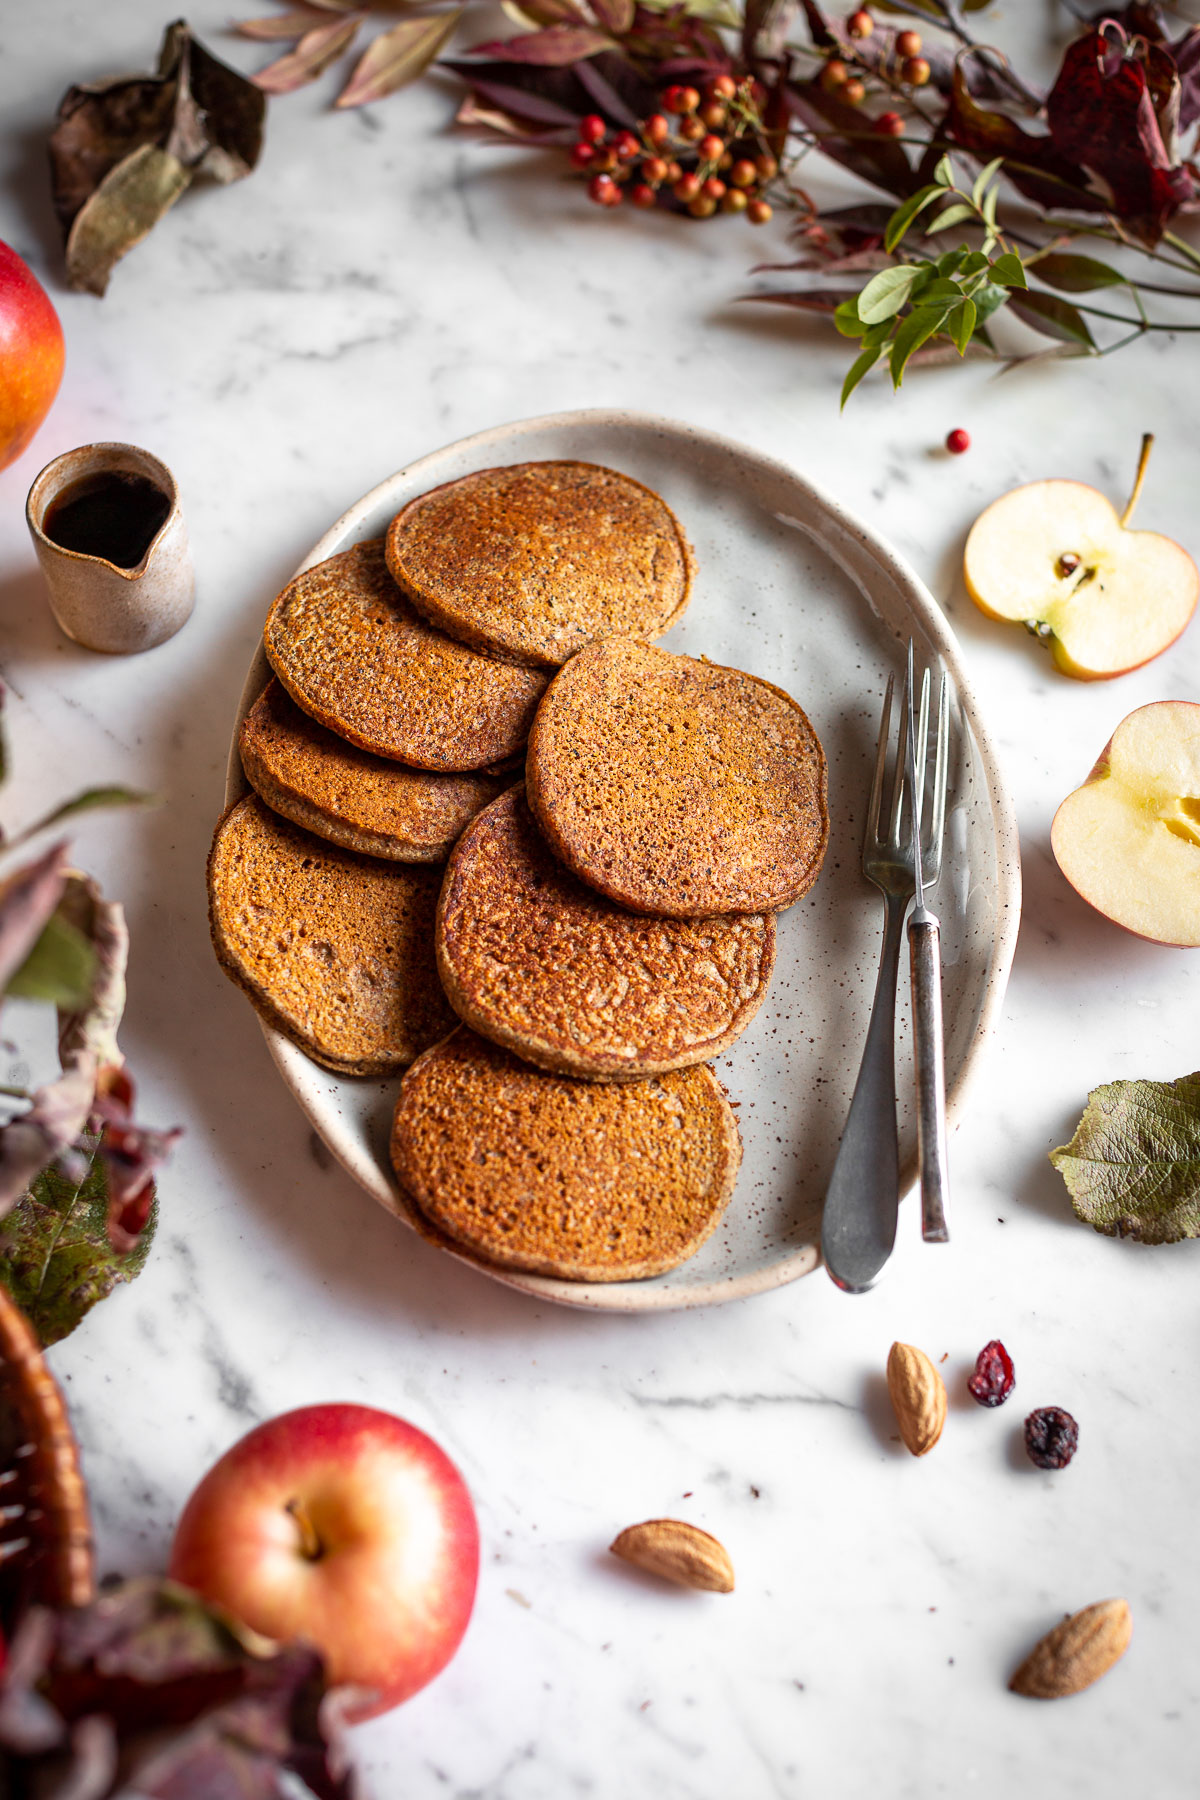 healthy VEGAN APPLE BUCKWHEAT PANCAKES gluten-free recipe with caramelized apples and cranberries ricetta PANCAKES VEGAN di GRANO SARACENO e MELE SENZA GLUTINE con mele caramellate